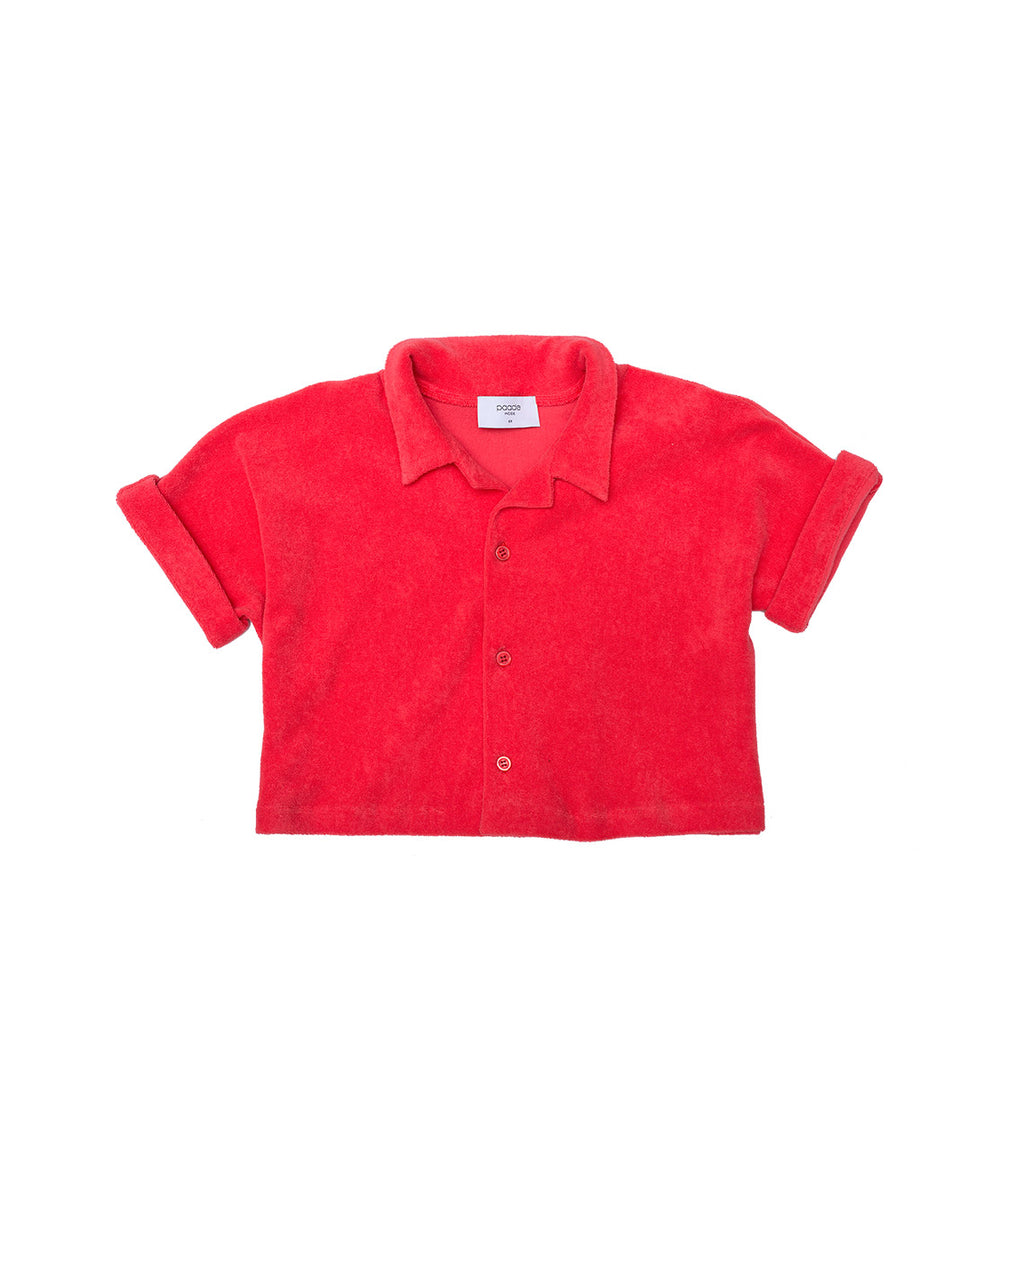 Cotton Jersey Shirt - Dahlia Red